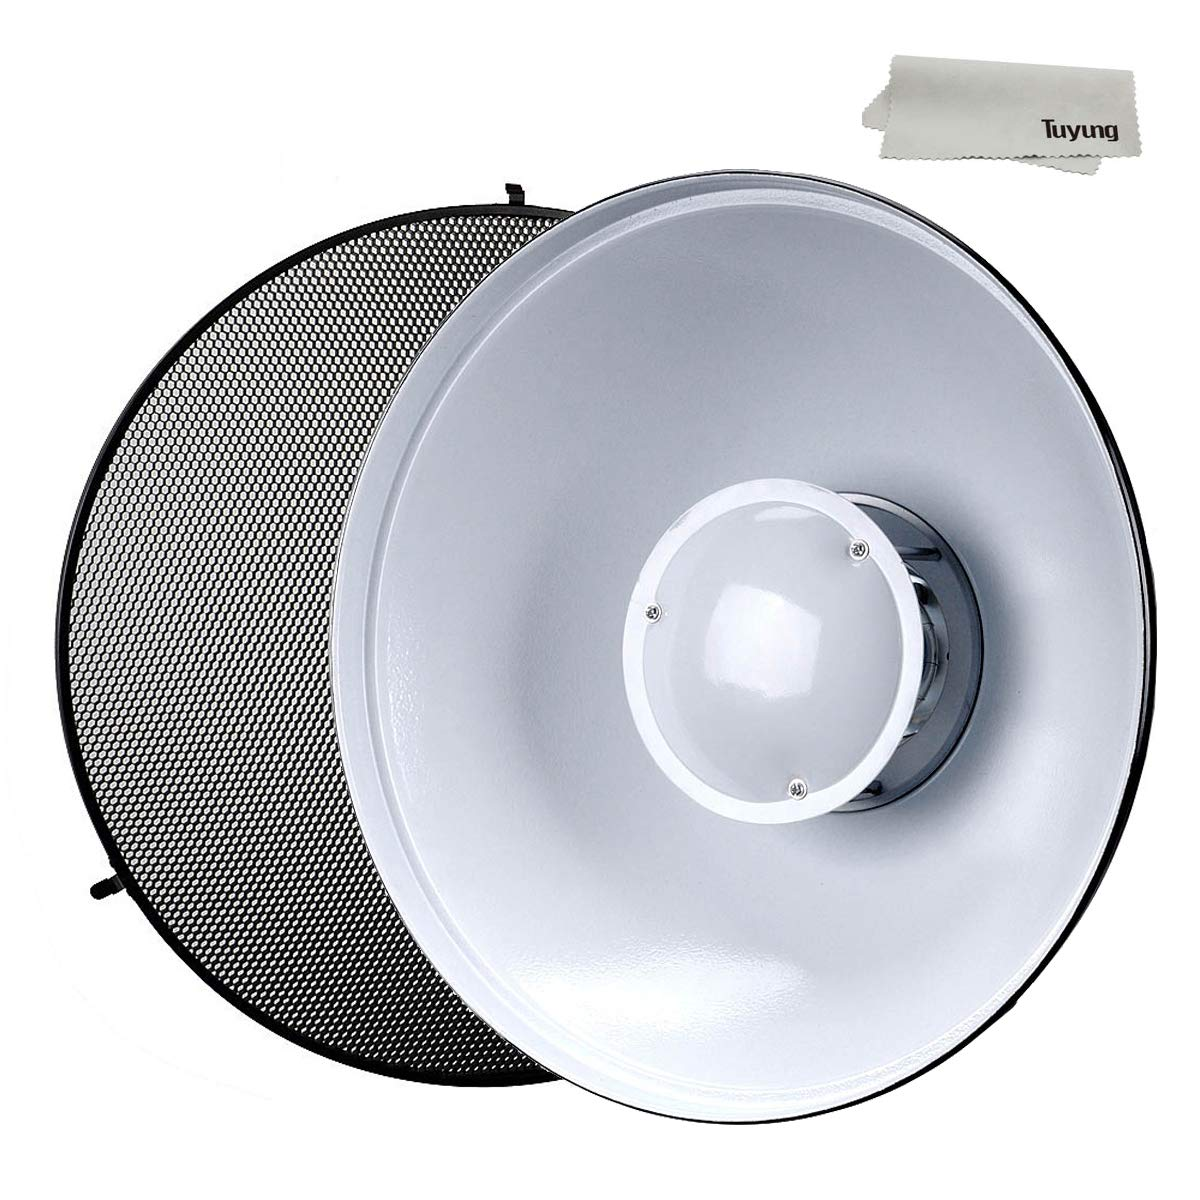 Godox 21'' 55cm Beauty Dish Reflector with Honeycomb Grid for Bowens Mount Studio Flash Strobe Monolight Such as Witstro AD400PRO AD600PRO AD600B AD600BM (Interior: White Bounce) by Godox (Image #1)